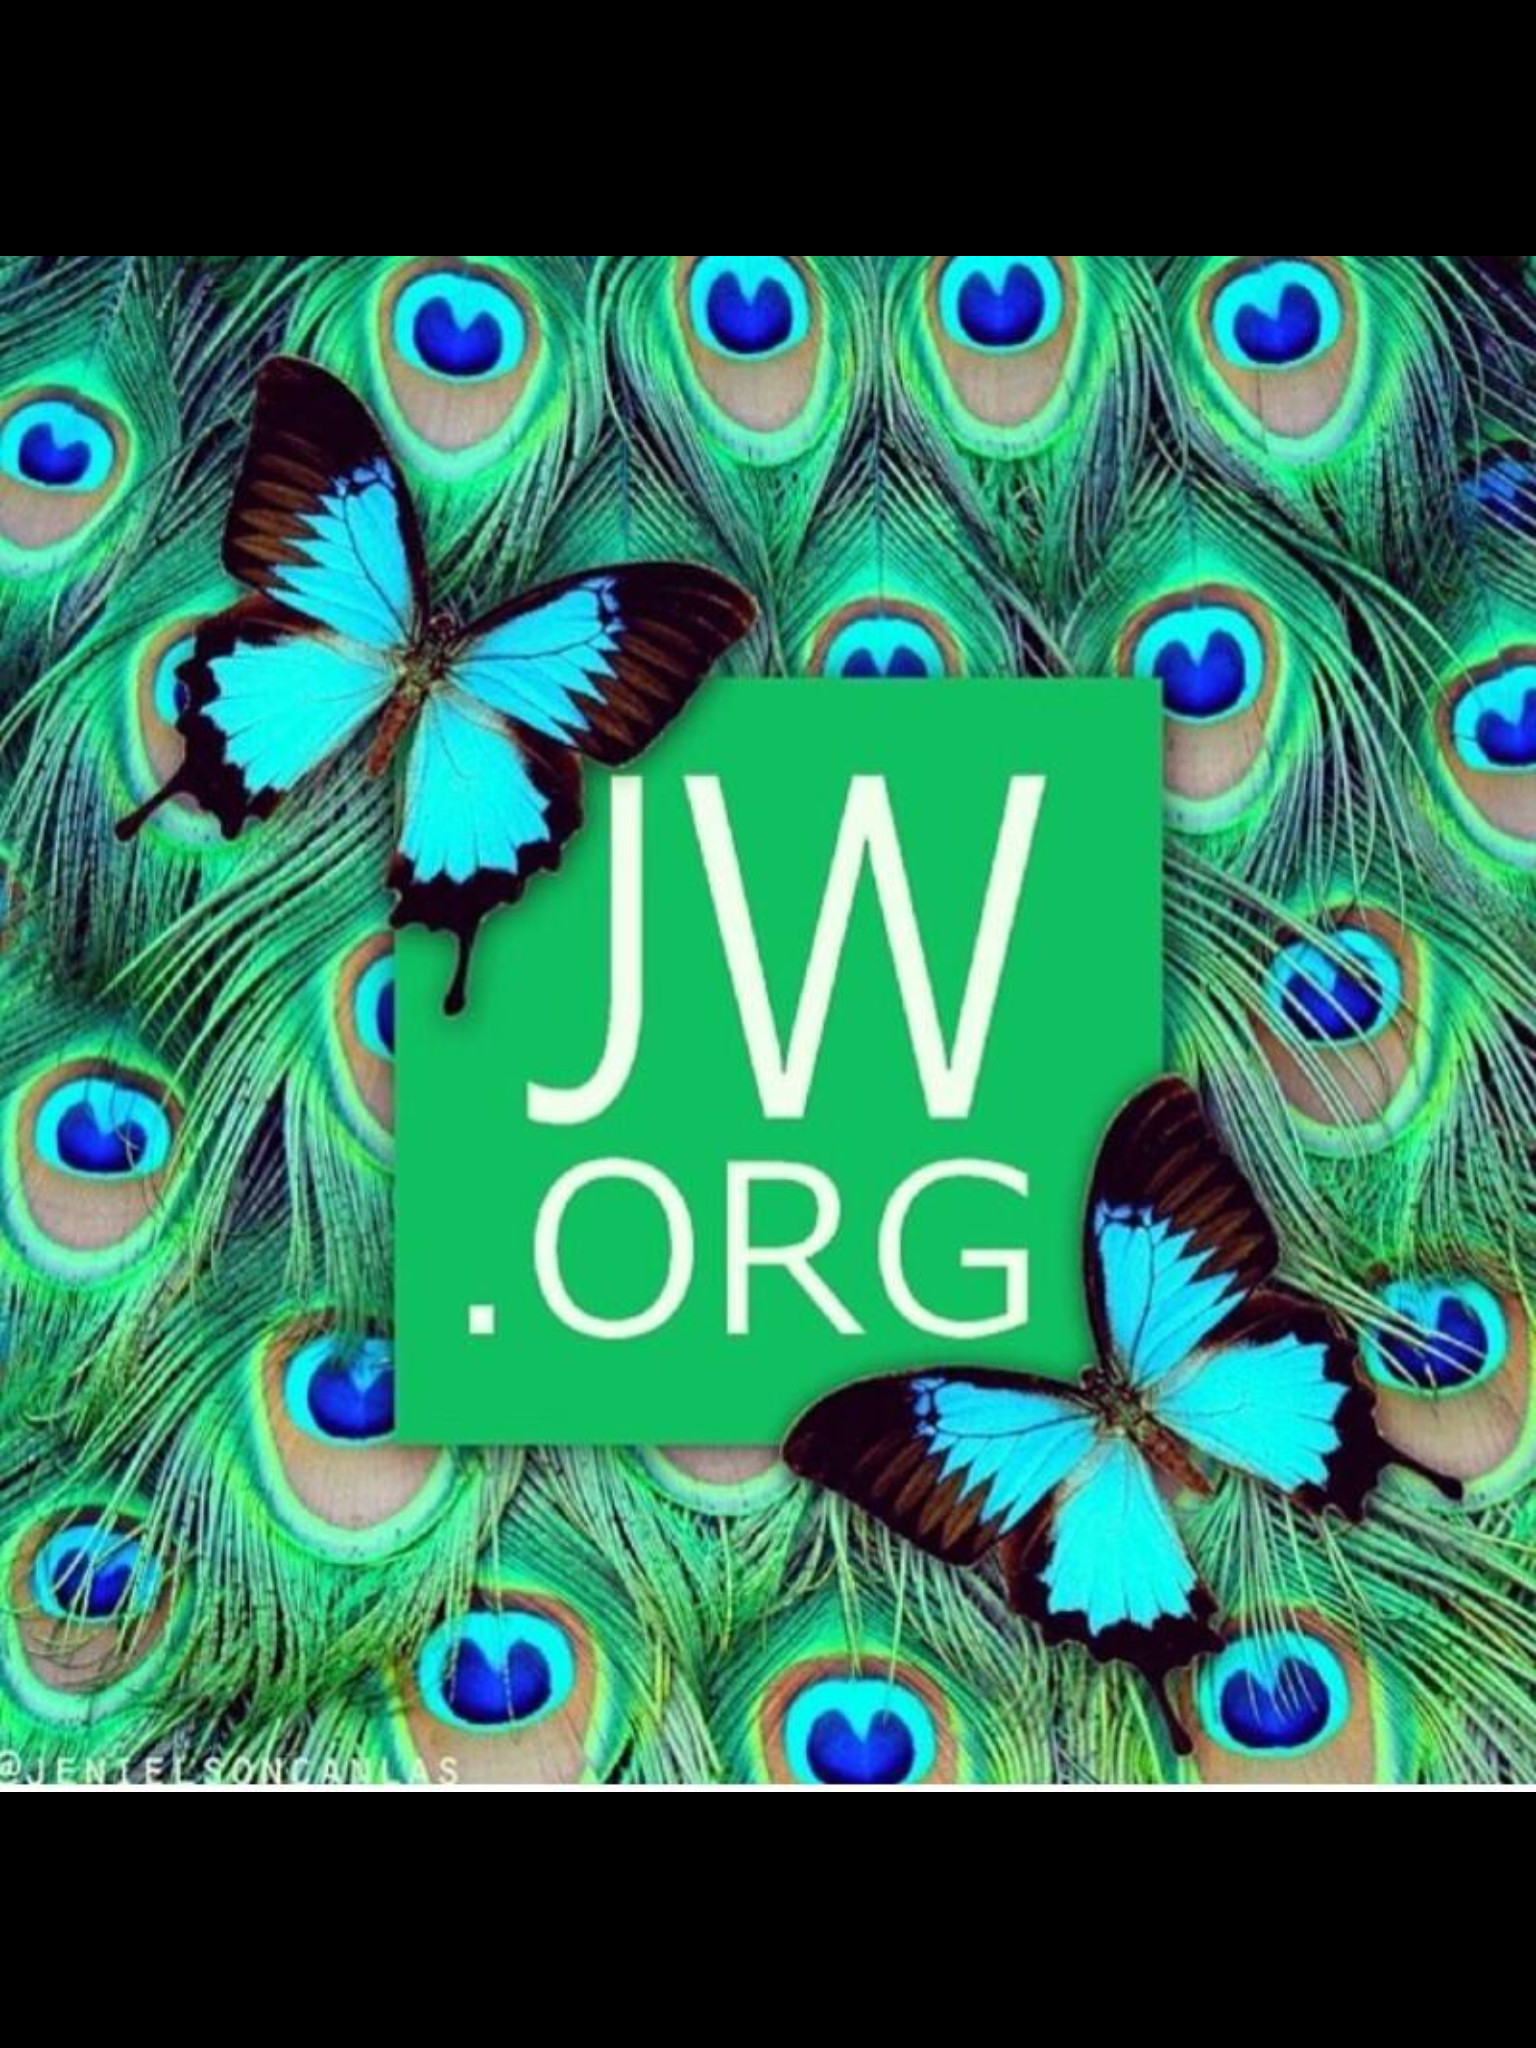 Org For All The Answers To Your Questions Jehovah Witnessjehovah Jw Org Logo Art 1536x2048 Wallpaper Teahub Io Submitted 2 years ago by 1914wt. 1536x2048 wallpaper